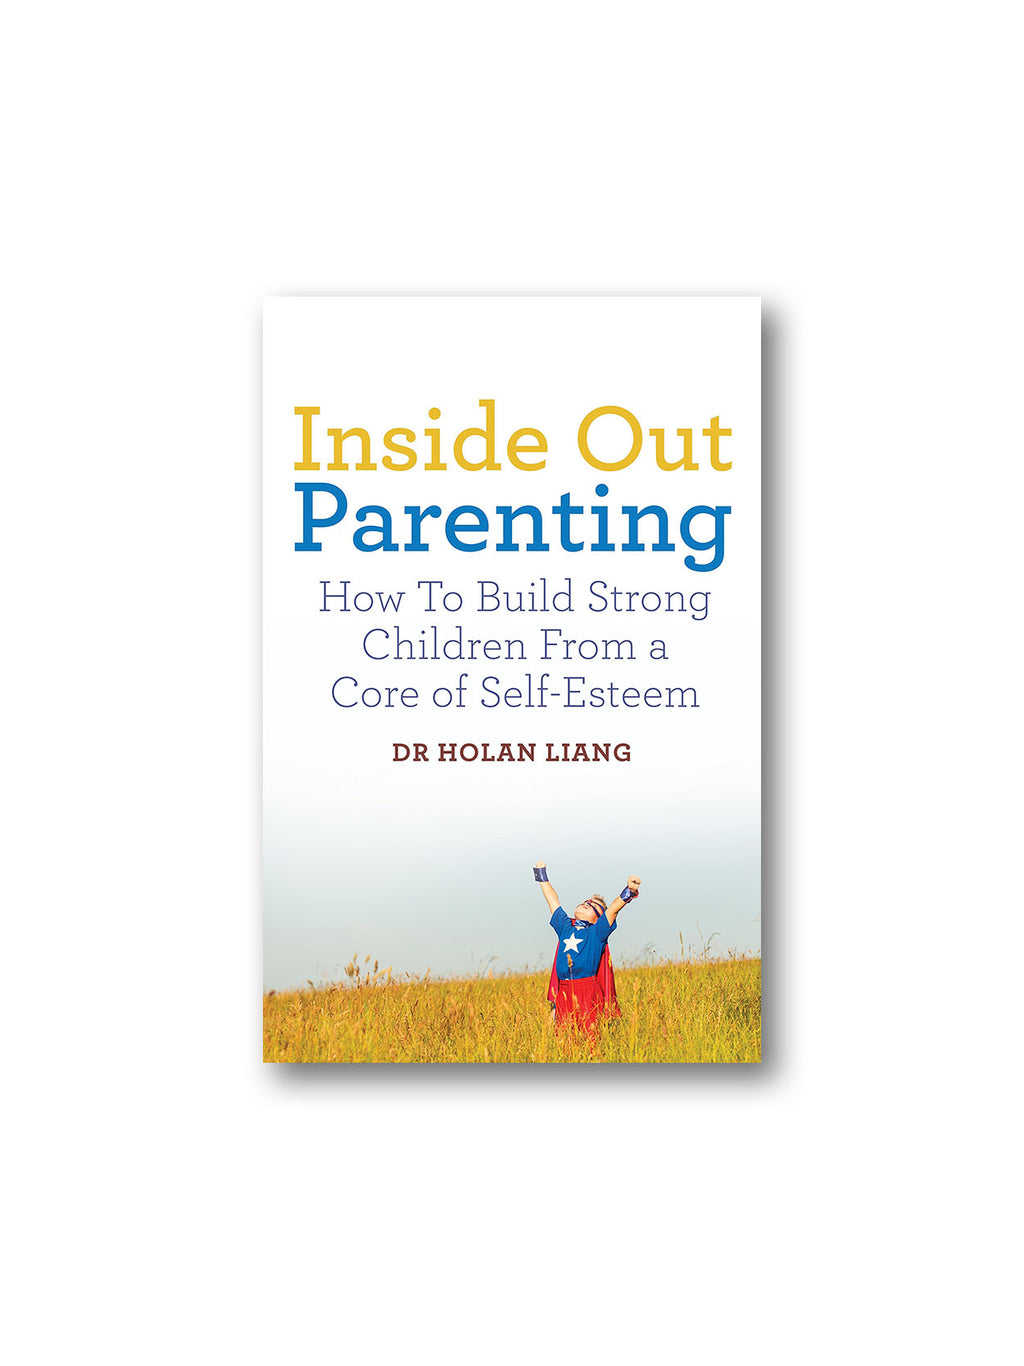 Inside Out Parenting : How to Build Strong Children from a Core of Self-Esteem